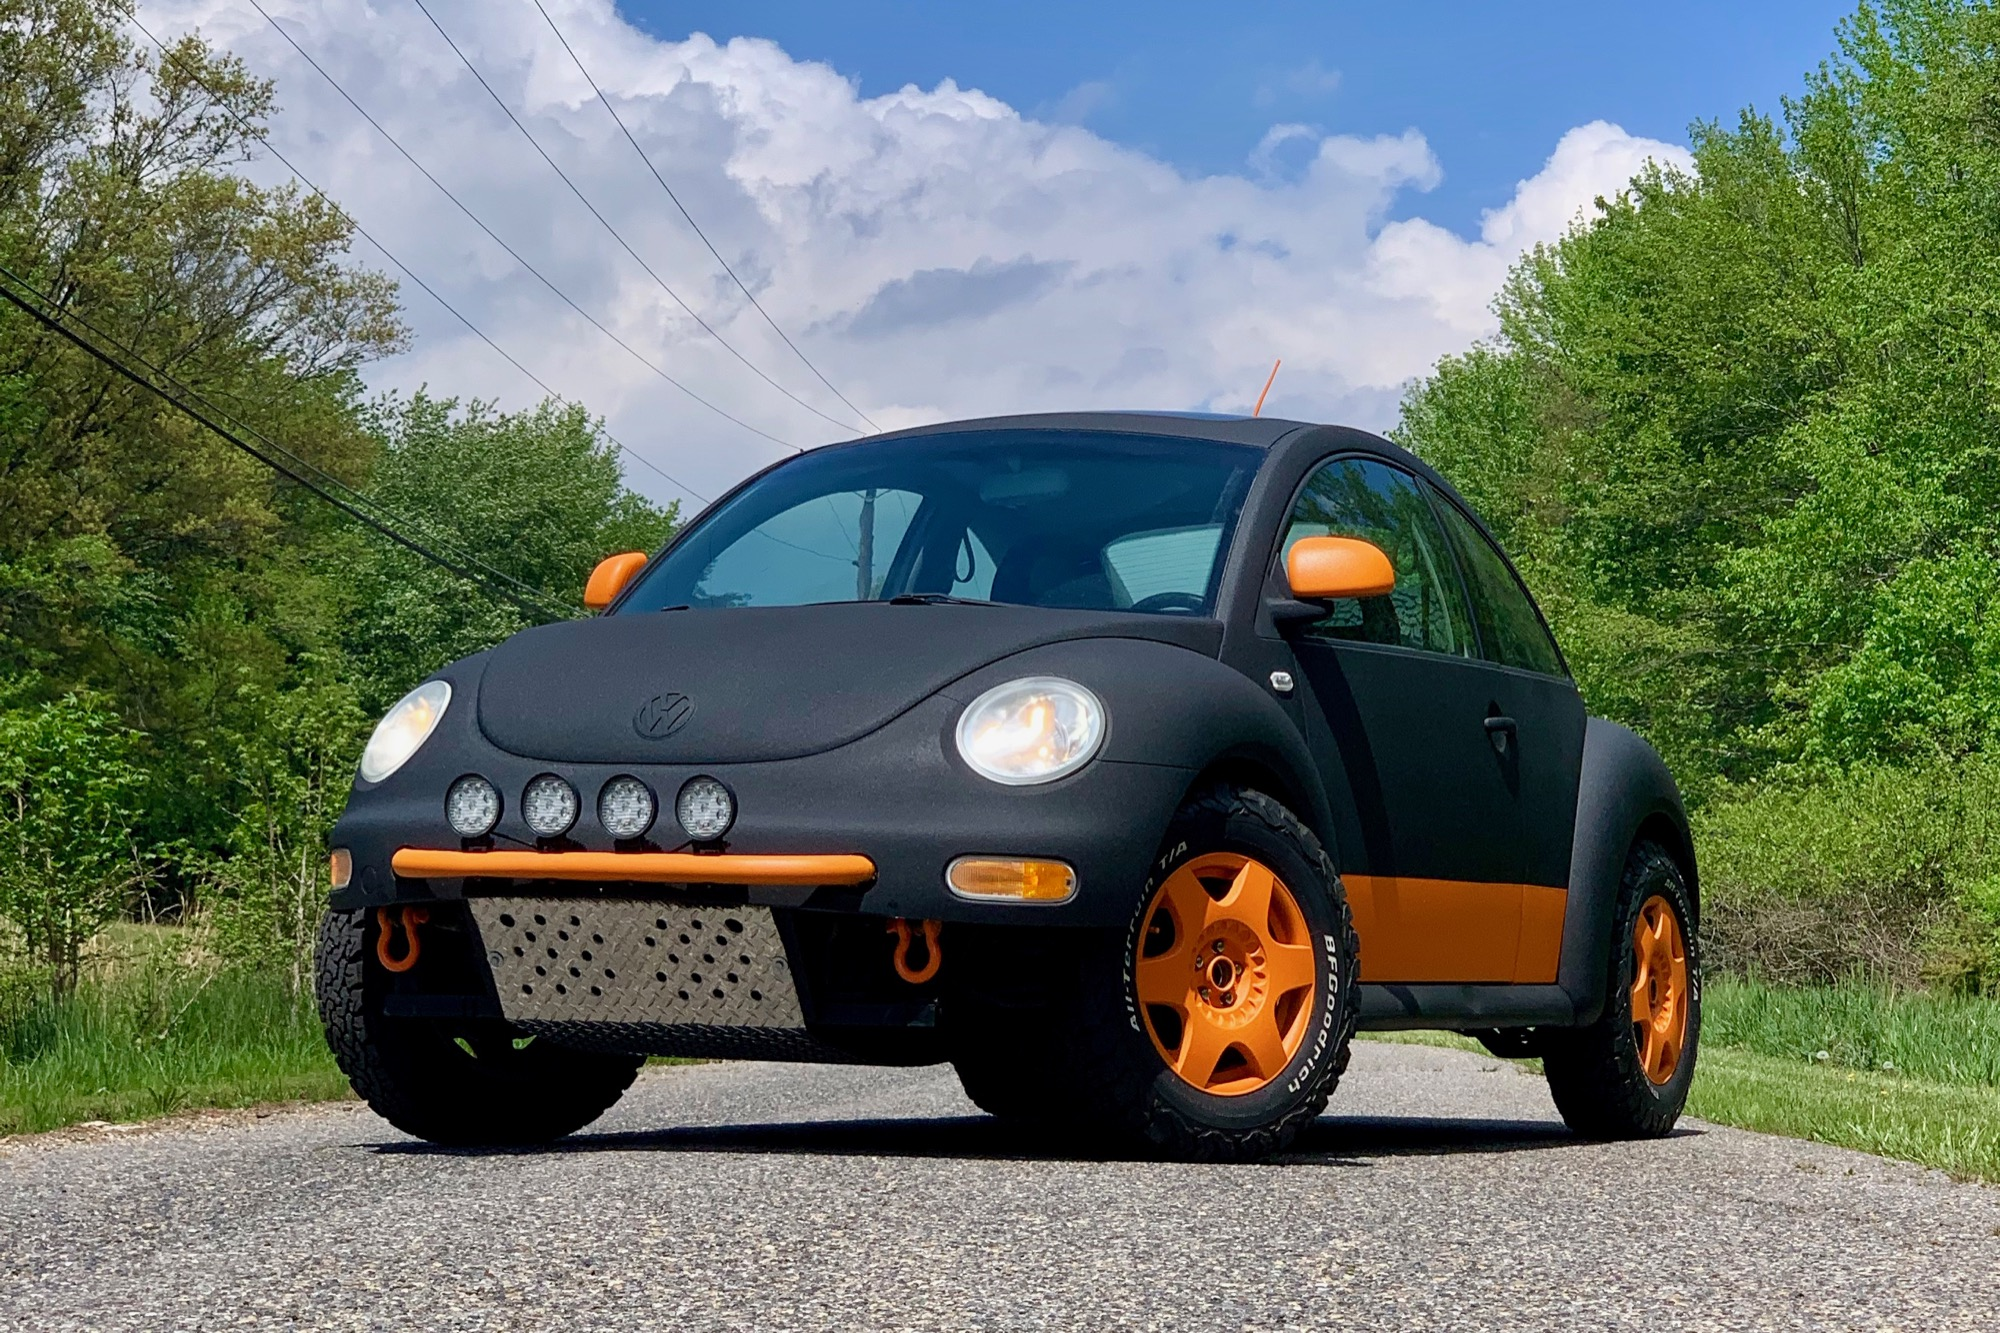 Gunaxin's Baja Bug Build